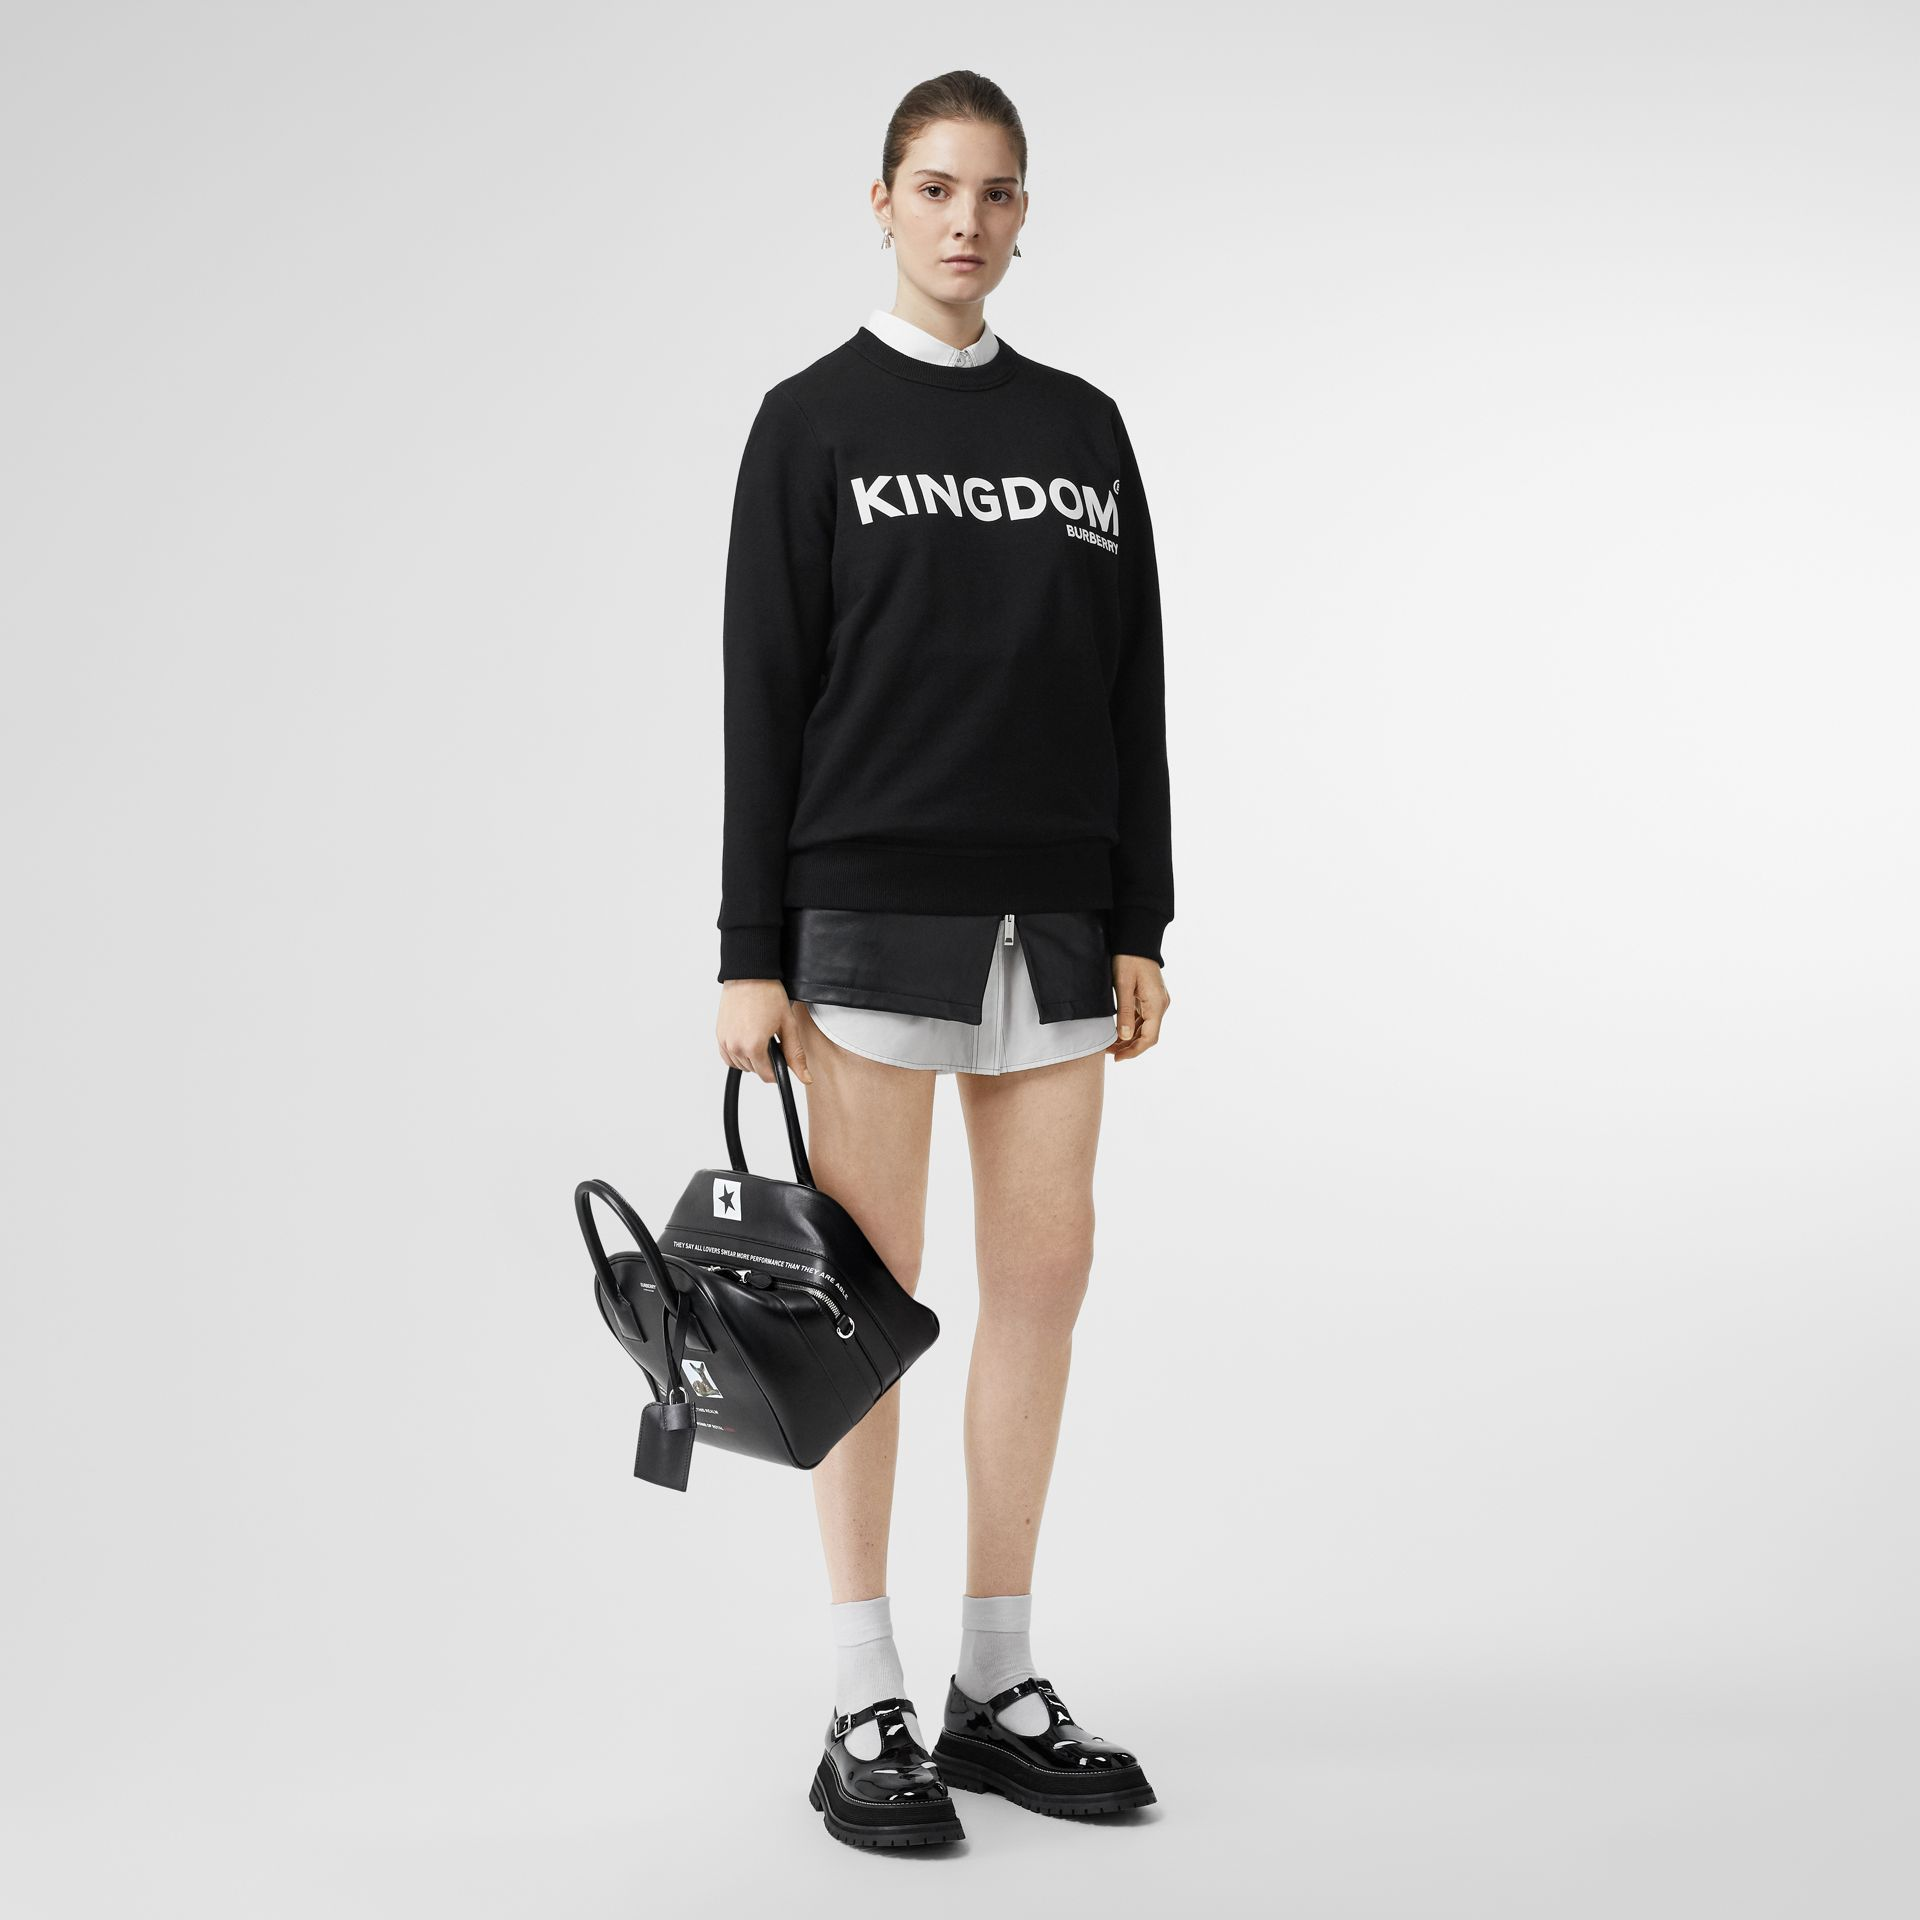 Kingdom Print Cotton Sweatshirt in Black - Women | Burberry - gallery image 0